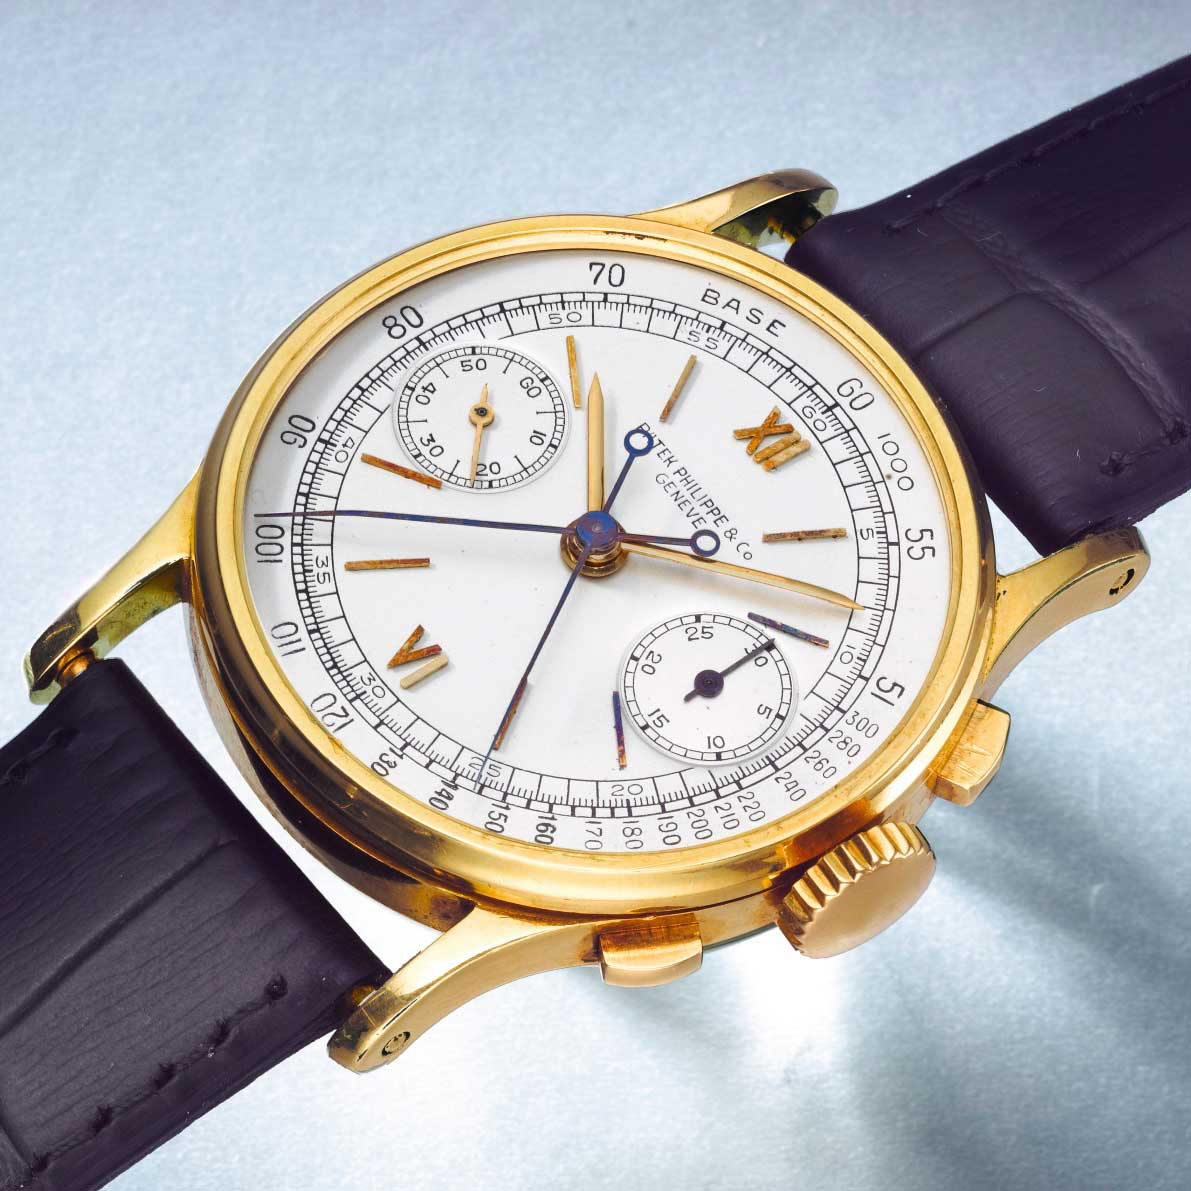 1941 Patek Philippe ref. 1436 yellow gold split second chronograph with silvered matte dial, applied Roman numerals and baton indexes (Sothebys.com)